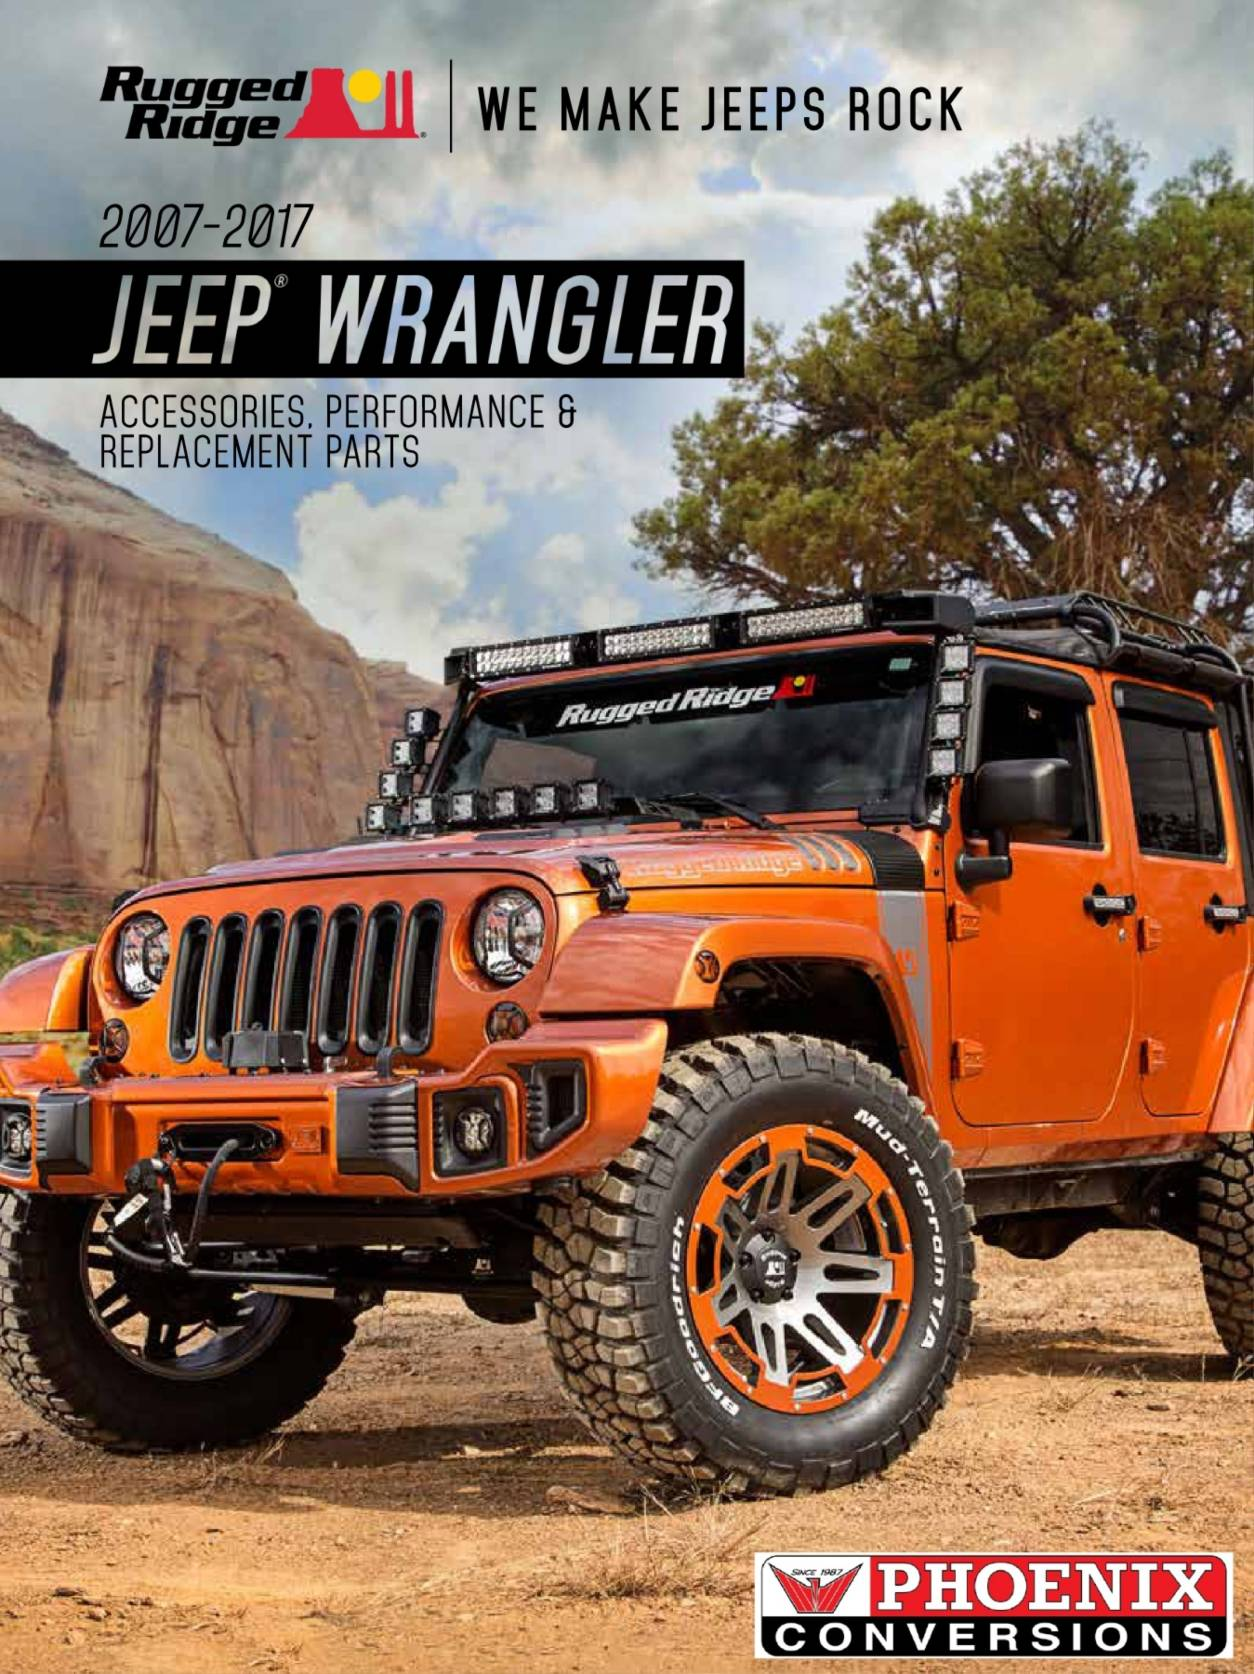 Omix-ada jeep wrangler JK part 2017